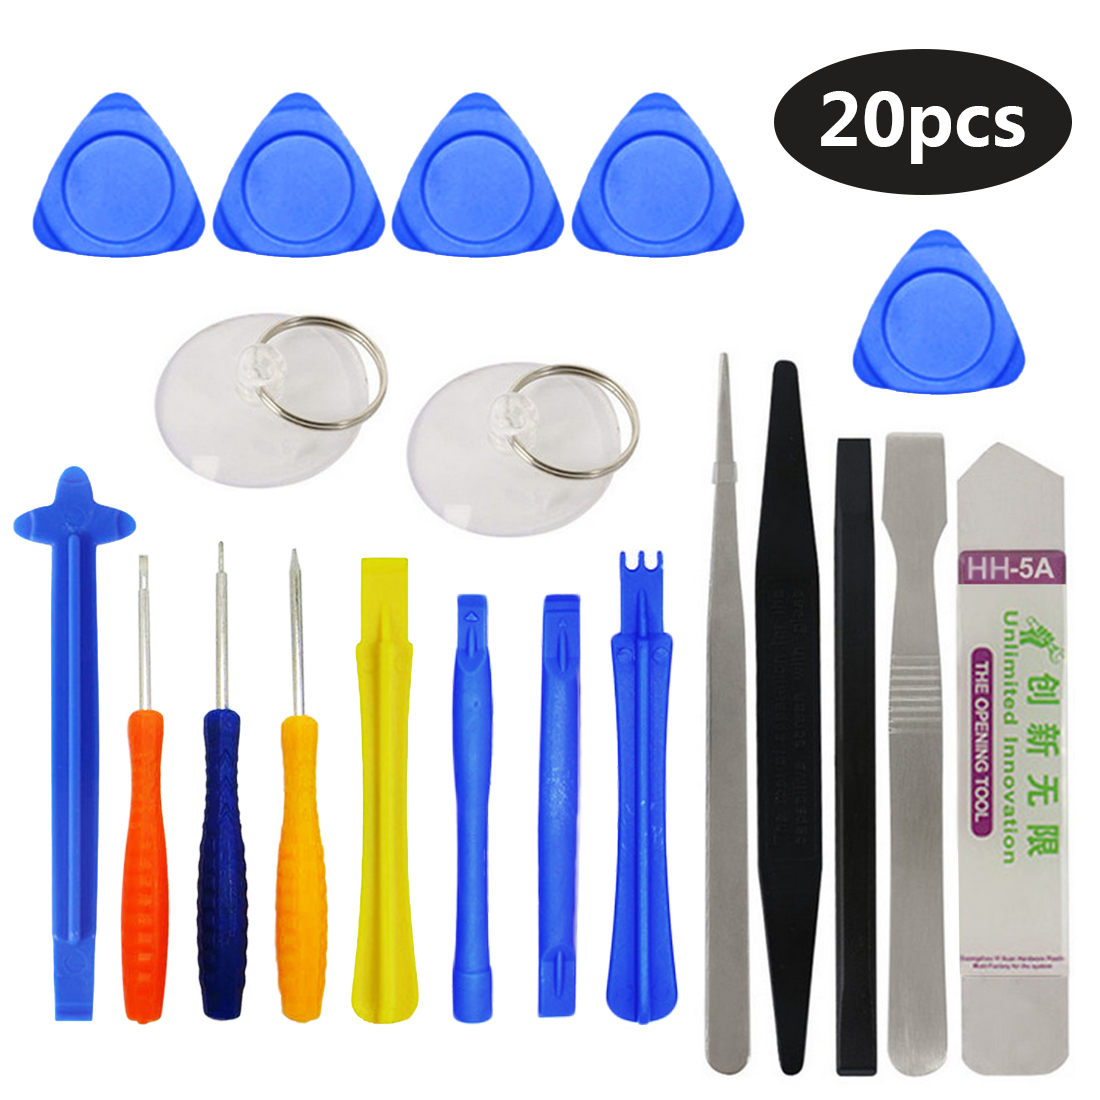 Repair Tools Kit 20 in 1 Screwdriver Set Mobile Phone Spudger Pry Opening Tool for iPhone iPad Samsung Cell Phone Hand Tools Set new professional 38 in 1 mobile phone repair tools kit opening screwdriver for iphone 5s 5 4s 4 sumsang mulitifuntion tool set